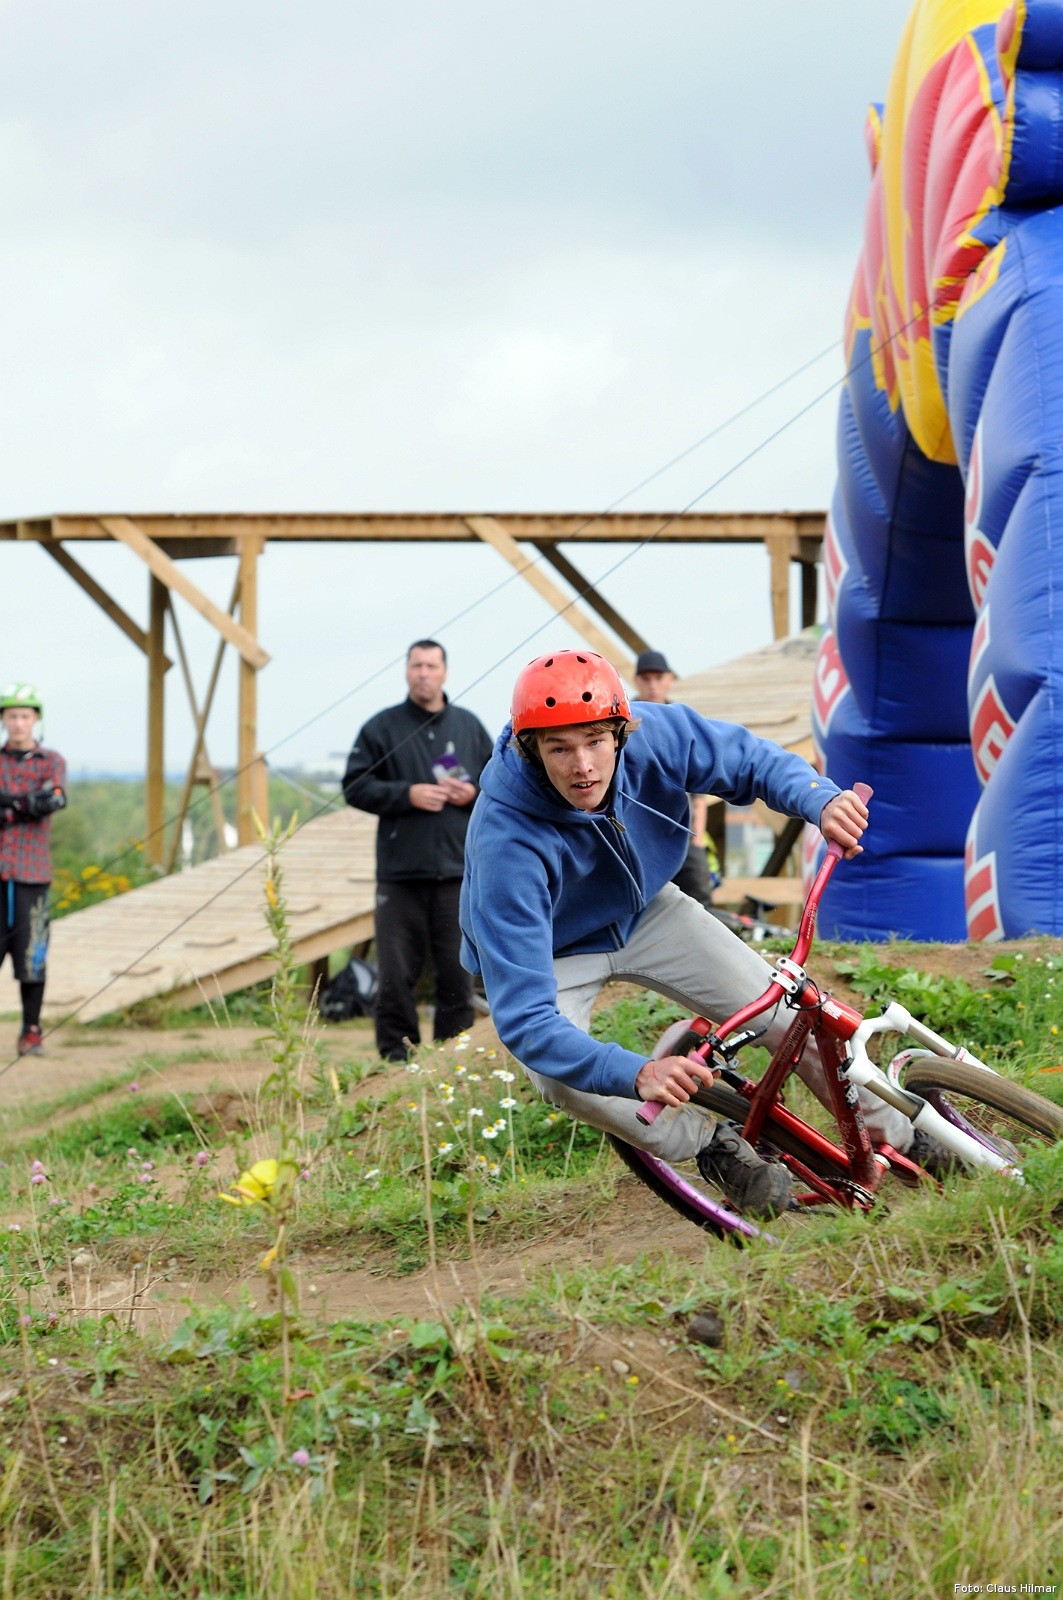 Pumptrack on time at Dk Dirtmasters - Fredleth - Mountain Biking Pictures - Vital MTB